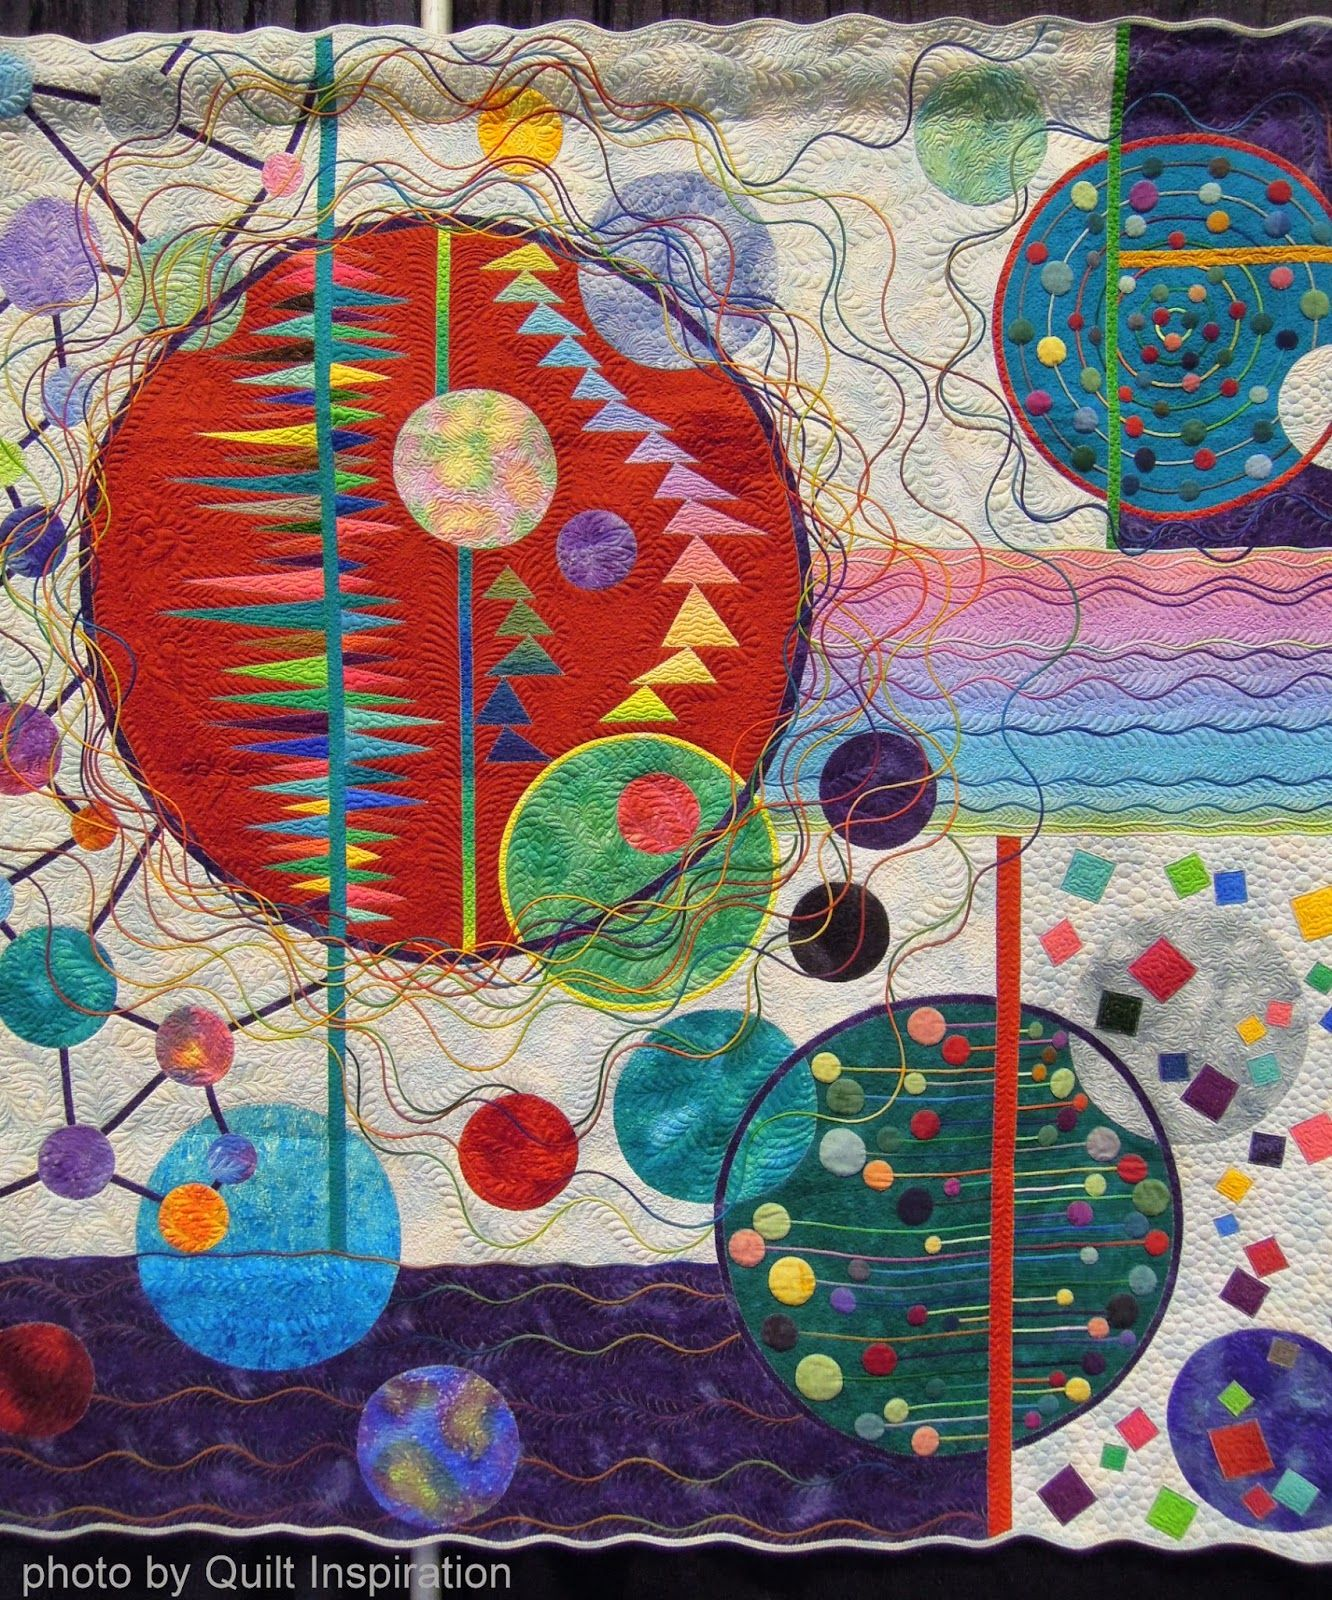 Moderno Quilt Mese: trapunte arte giapponese